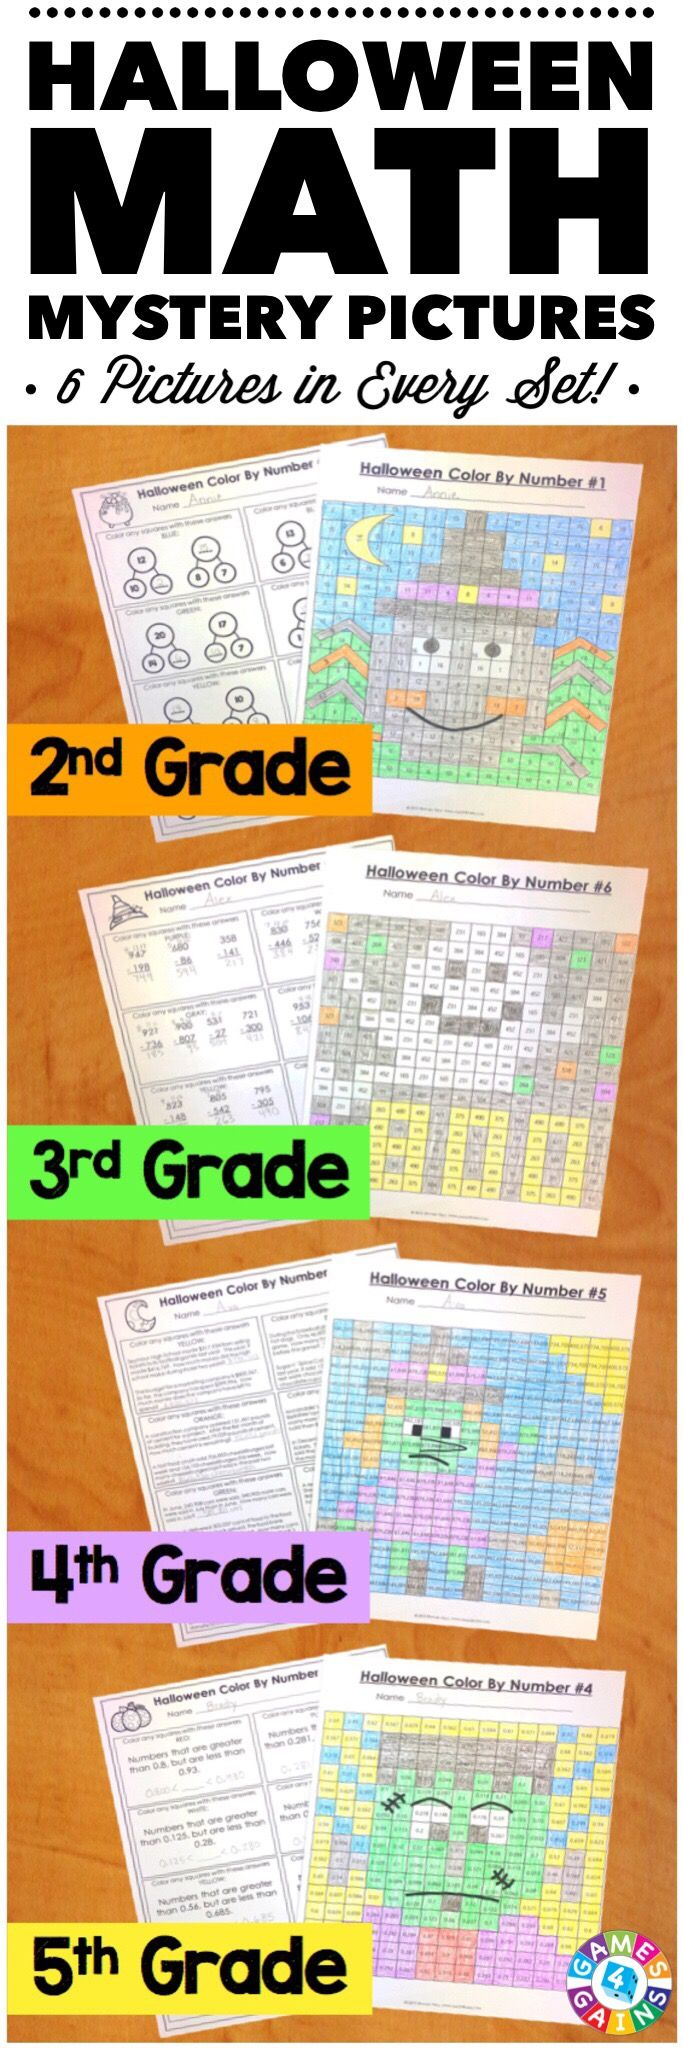 """My students LOVE these because they are fun to solve and color! I love them because it is a great review of the skills!"" These Halloween Math Color by Number Activities are the perfect way to review key math skills taught throughout the beginning of the year. Each set comes with 6 different pictures, and each picture focuses on a different skill. Different versions available for 2nd, 3rd, 4th, and 5th grades."